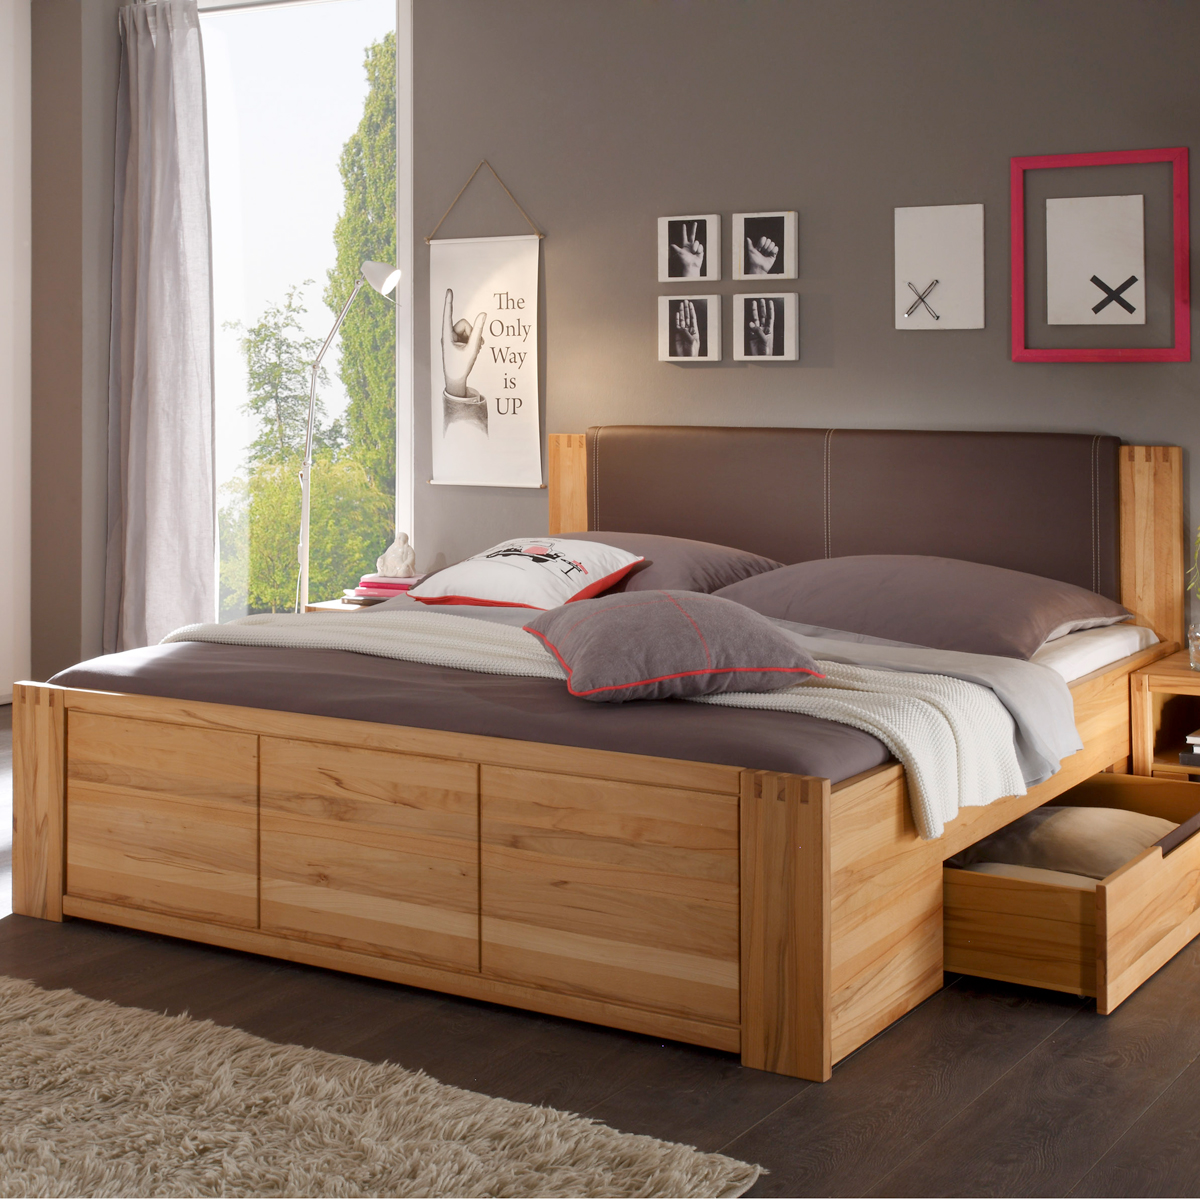 holzbett massivholzbett doppelbett massiv kernbuche bett cassetta 180x200 neu ebay. Black Bedroom Furniture Sets. Home Design Ideas